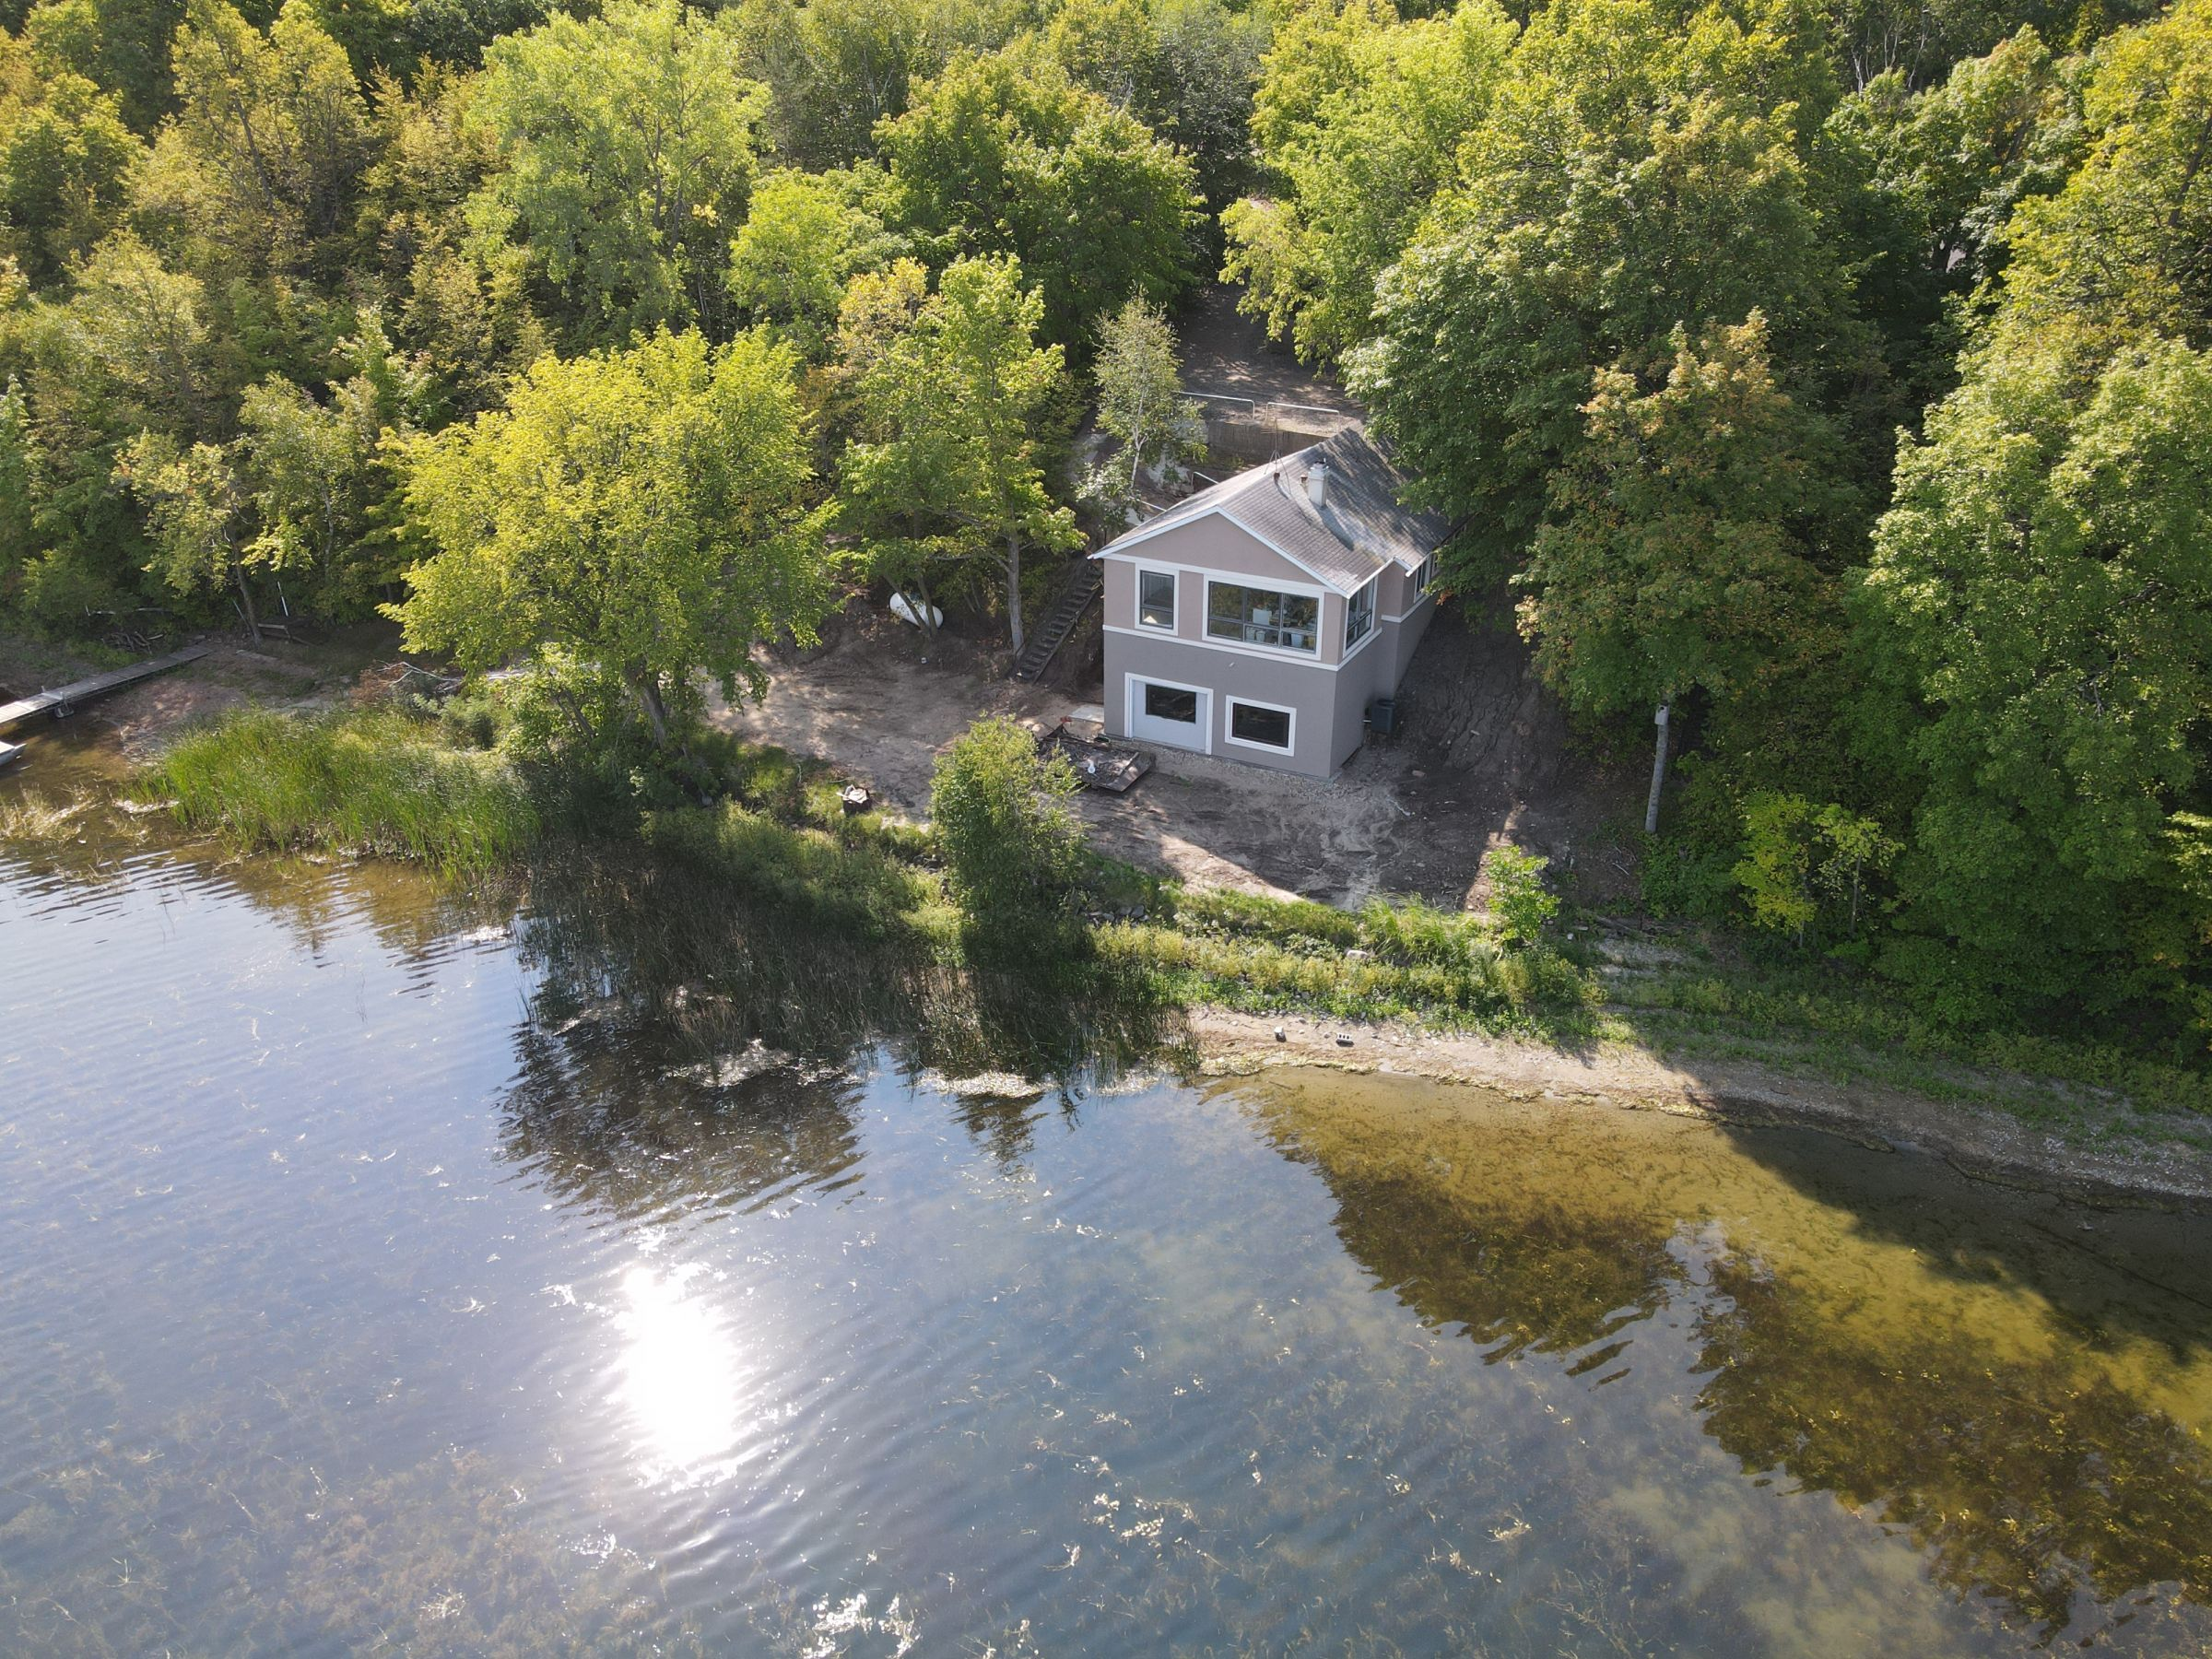 residential-auctions-development-land-commercial-douglas-county-minnesota-40-acres-listing-number-15777-2-2021-09-28-162434.JPG